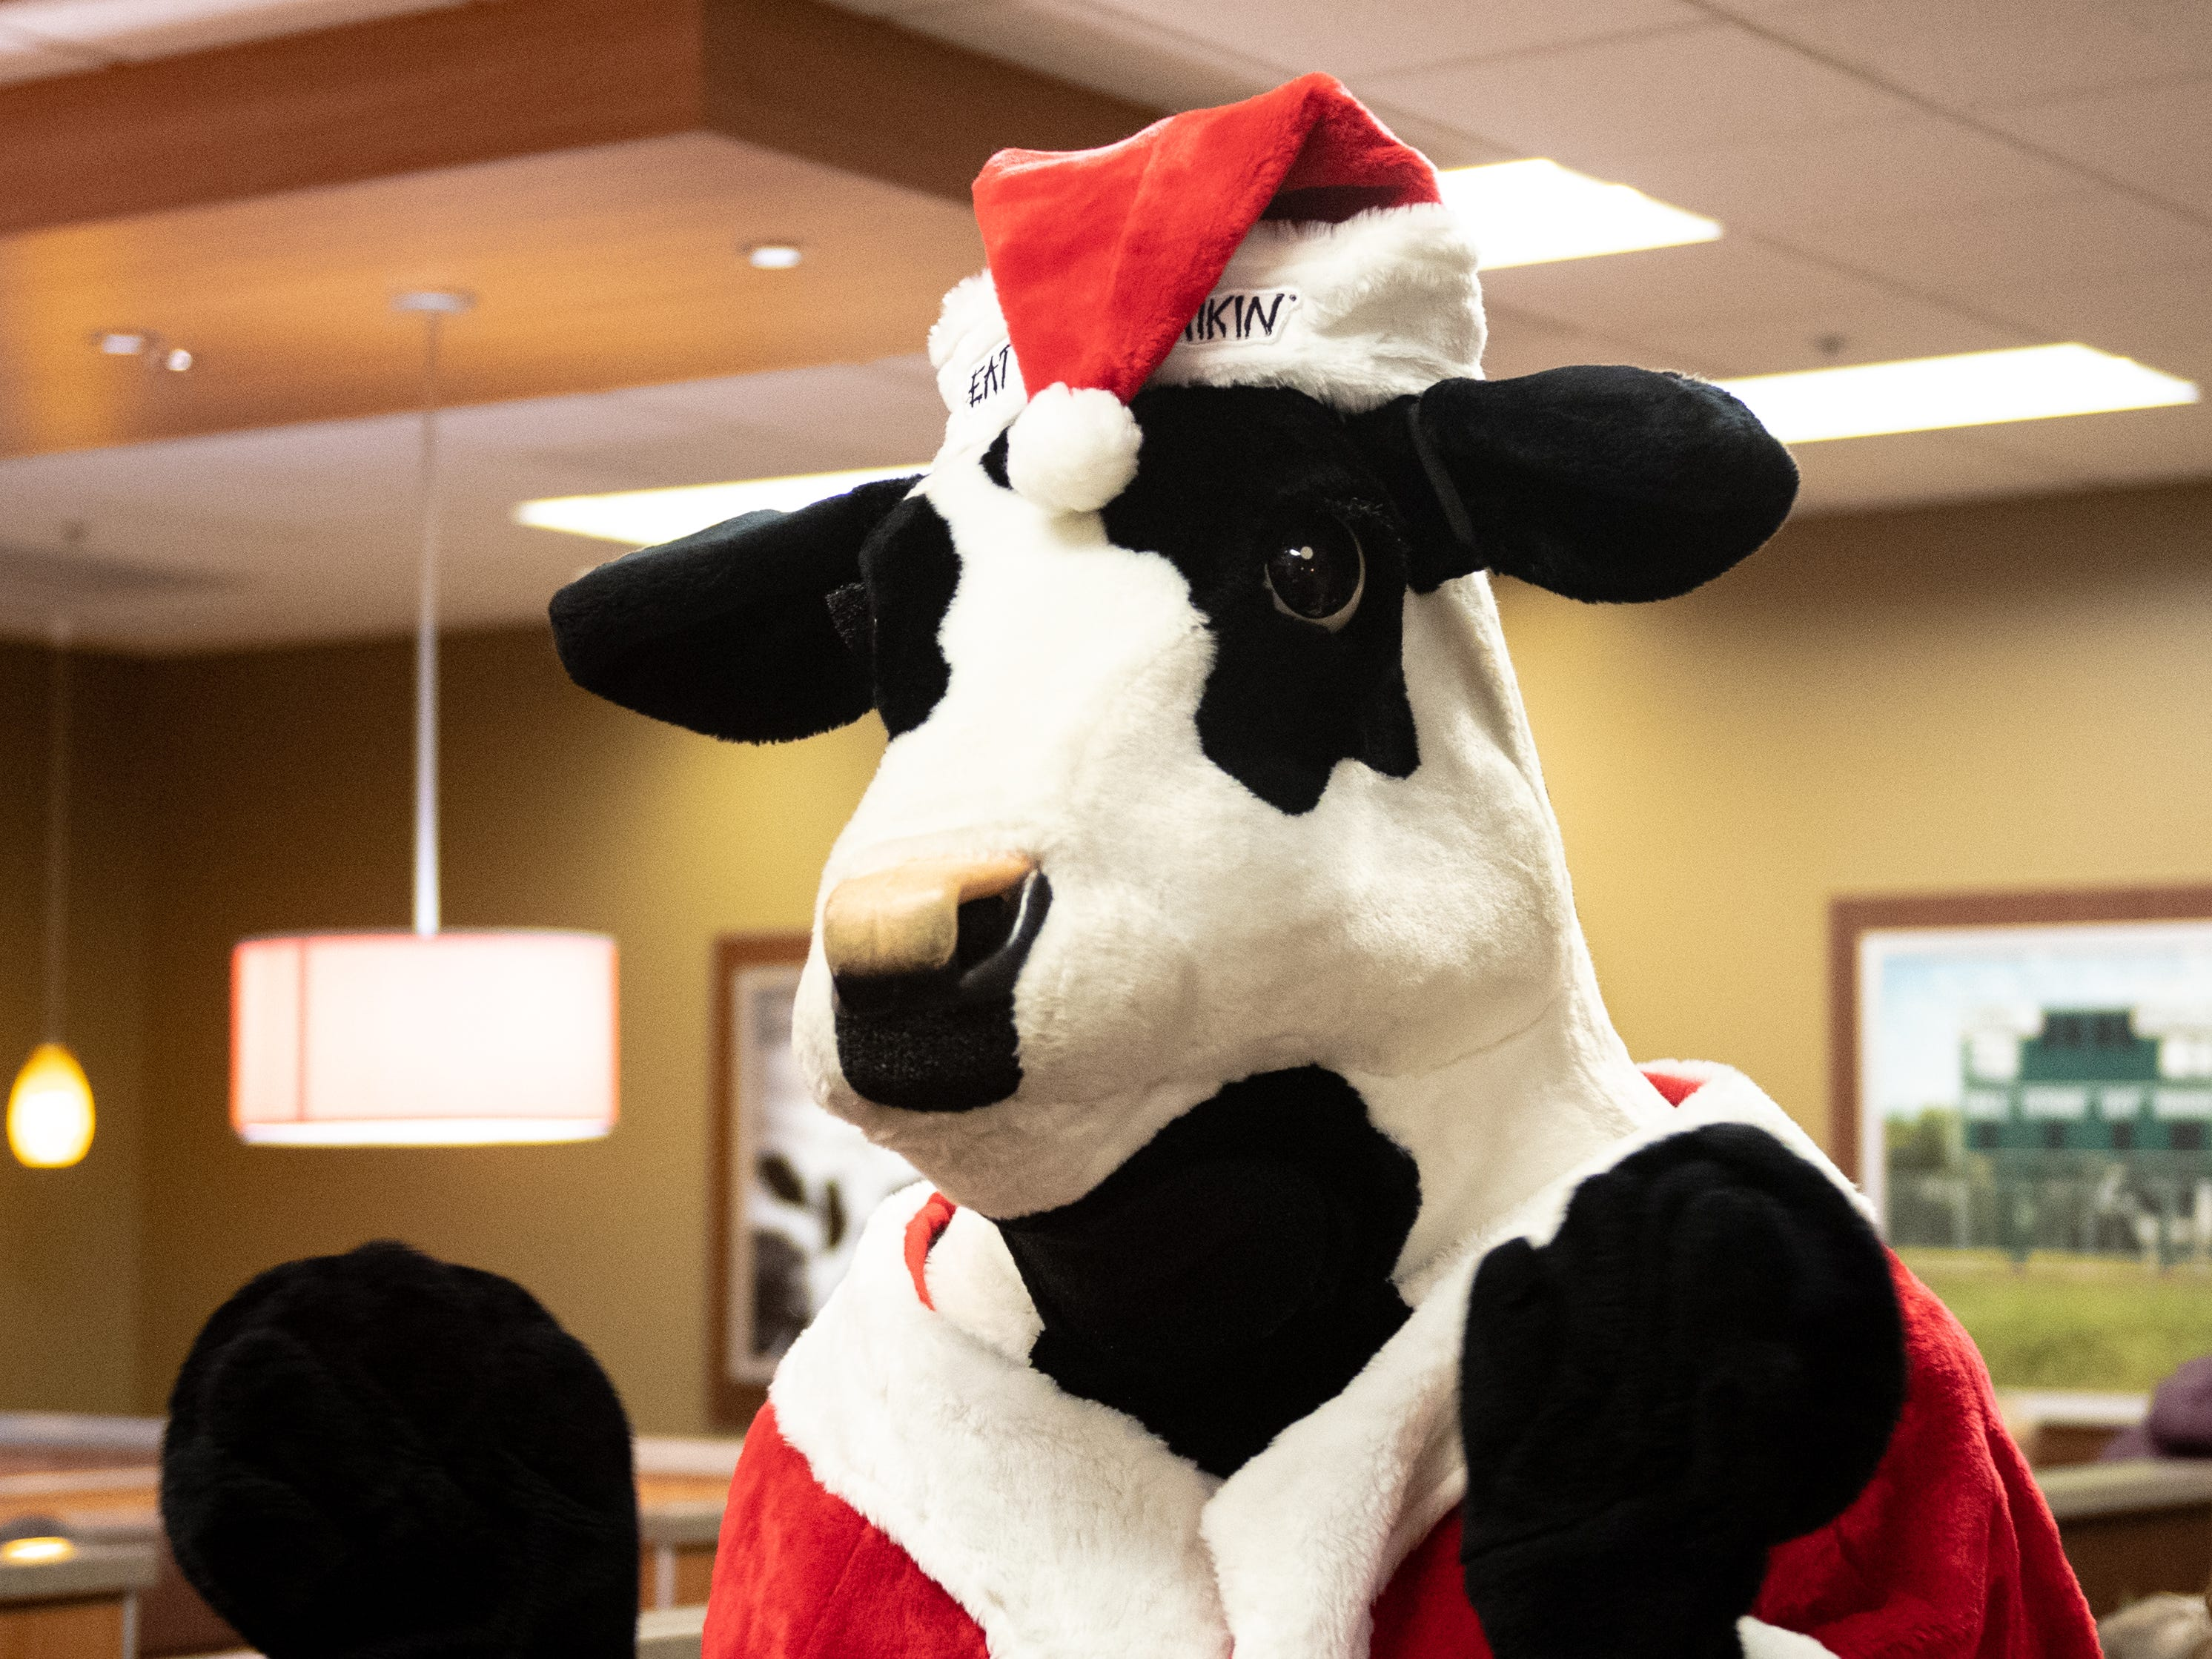 Santa Cow walks around the packed Chick-fil-A taking pictures with young guests and their parents during the Dinner with Santa and Santa Cow event Wednesday night.